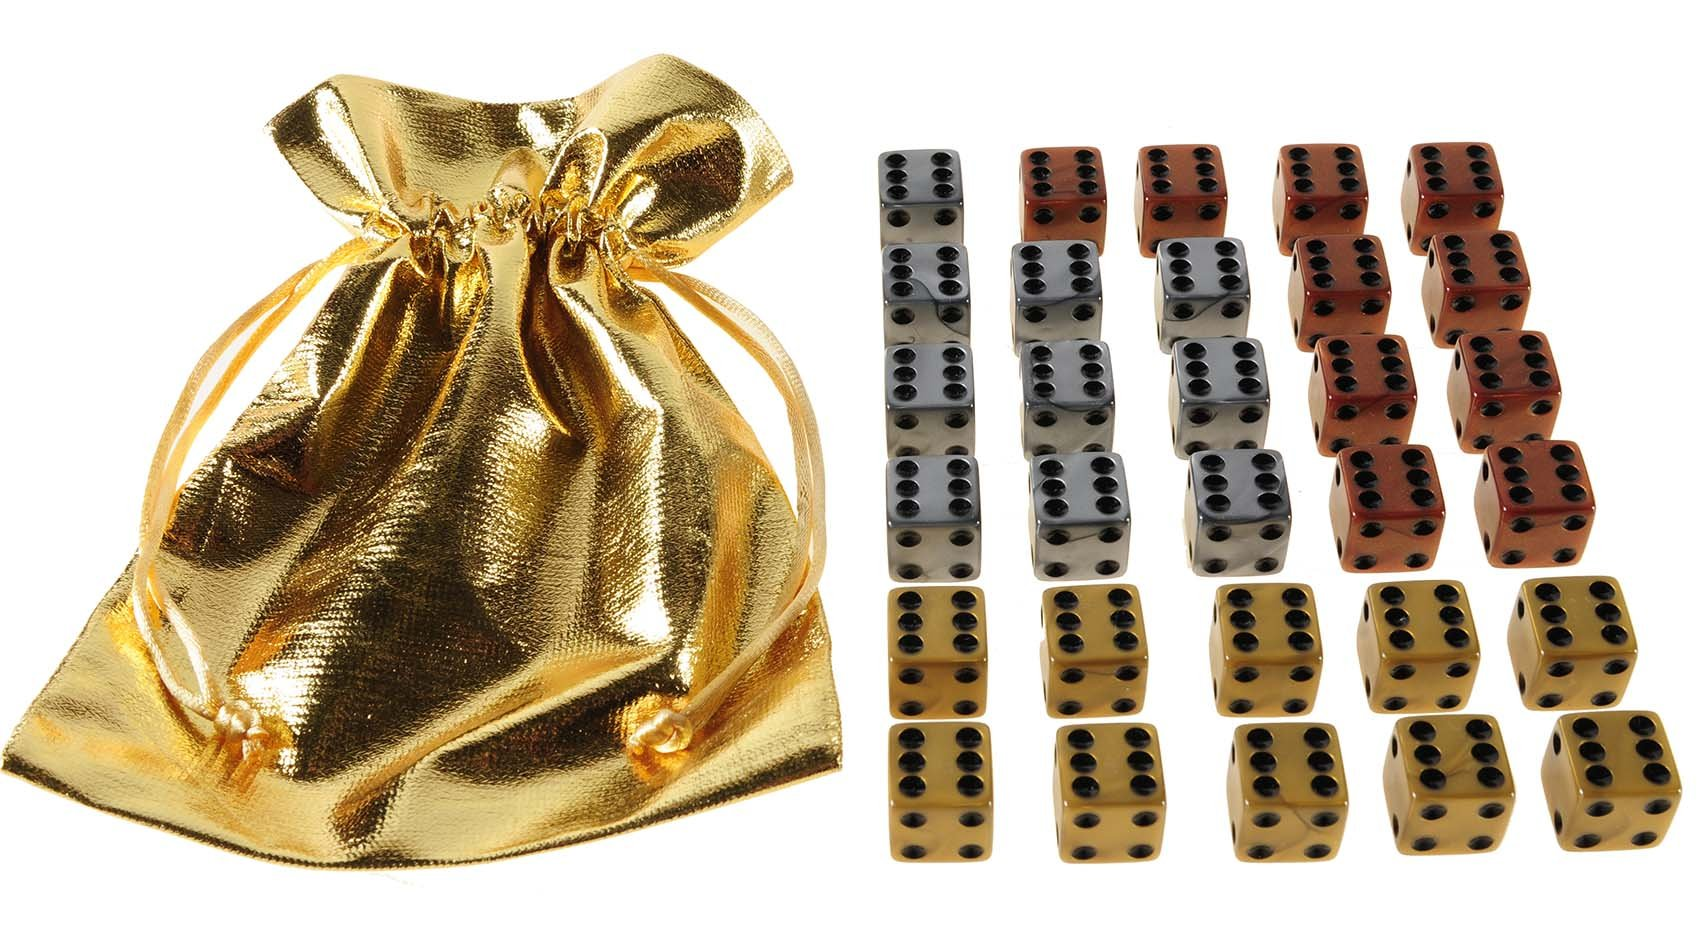 Dice D6, 16mm, Set of 30 in Gold, Silver and Bronze Pearlized Swirl Colors _ 10 each of 3 Colors _ Bonus Gold Metallic Color Cloth Drawstring Pouch